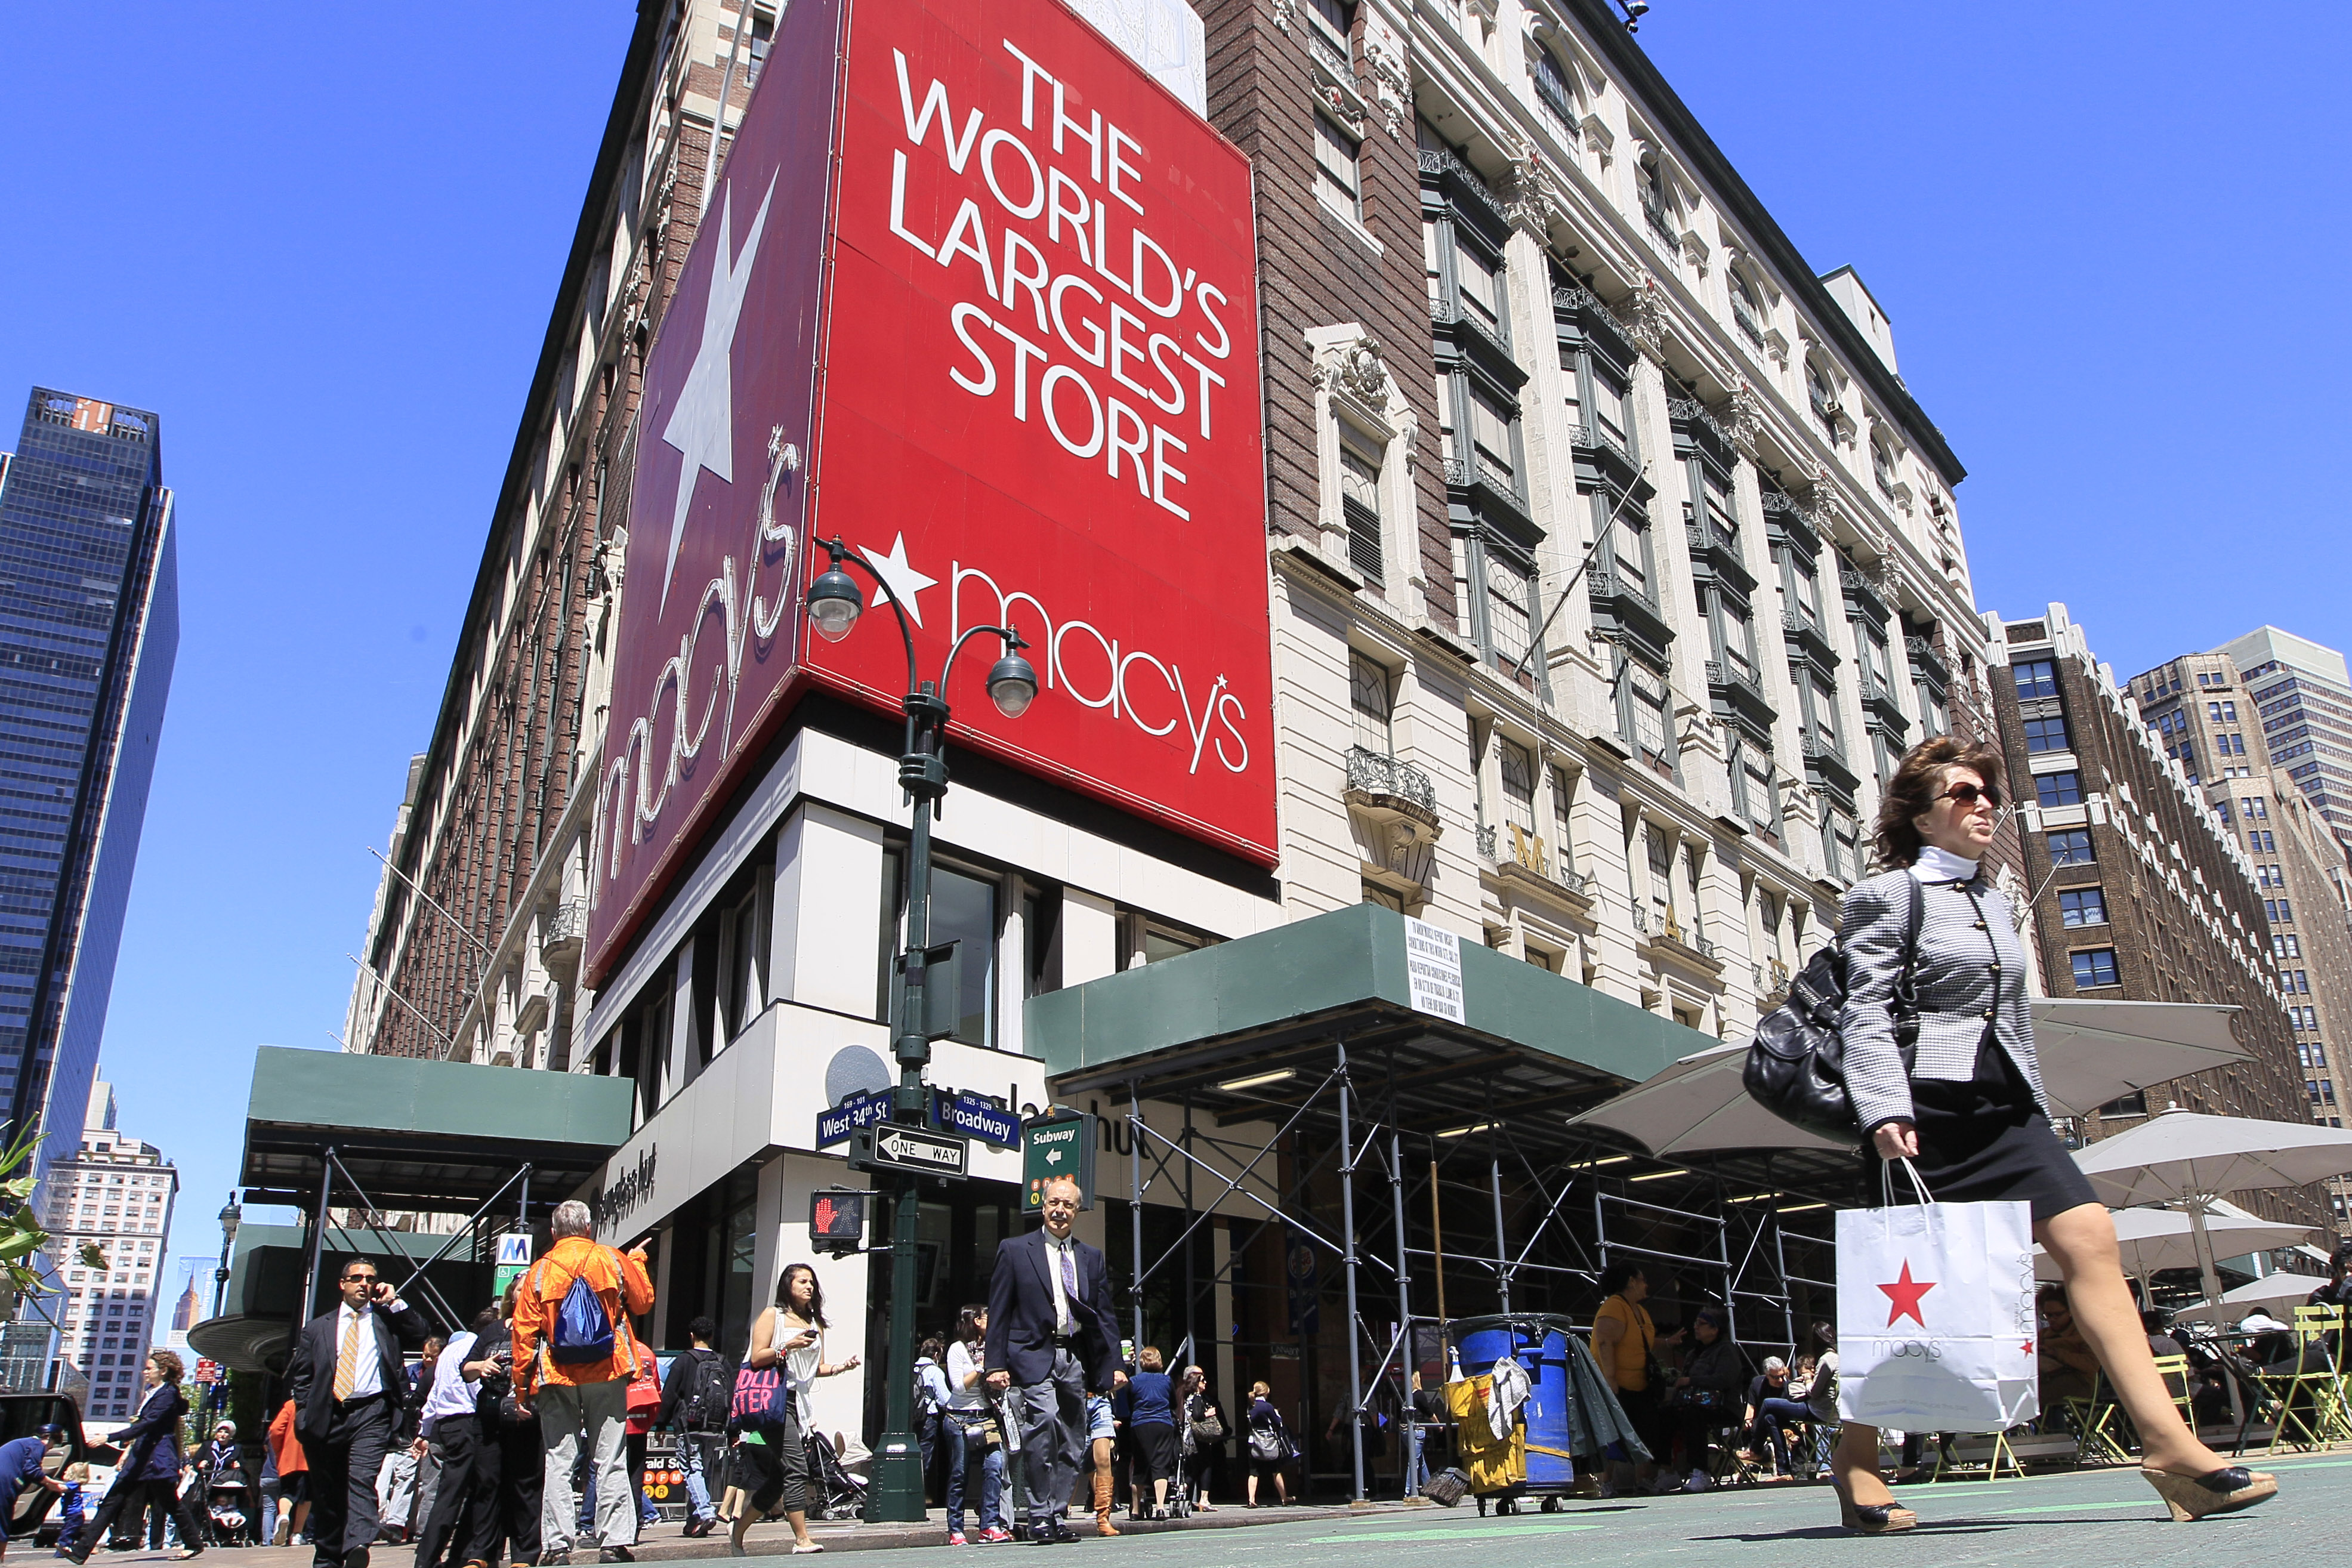 People carrying Macy's shopping bags walk past the Macy's flagship store, Tuesday, May 10, 2011 in New York. Macy's, Inc. reported Wednesday, May 11, strong sales, earnings and cash flow for the first quarter of 2011. (AP Photo/Mary Altaffer)